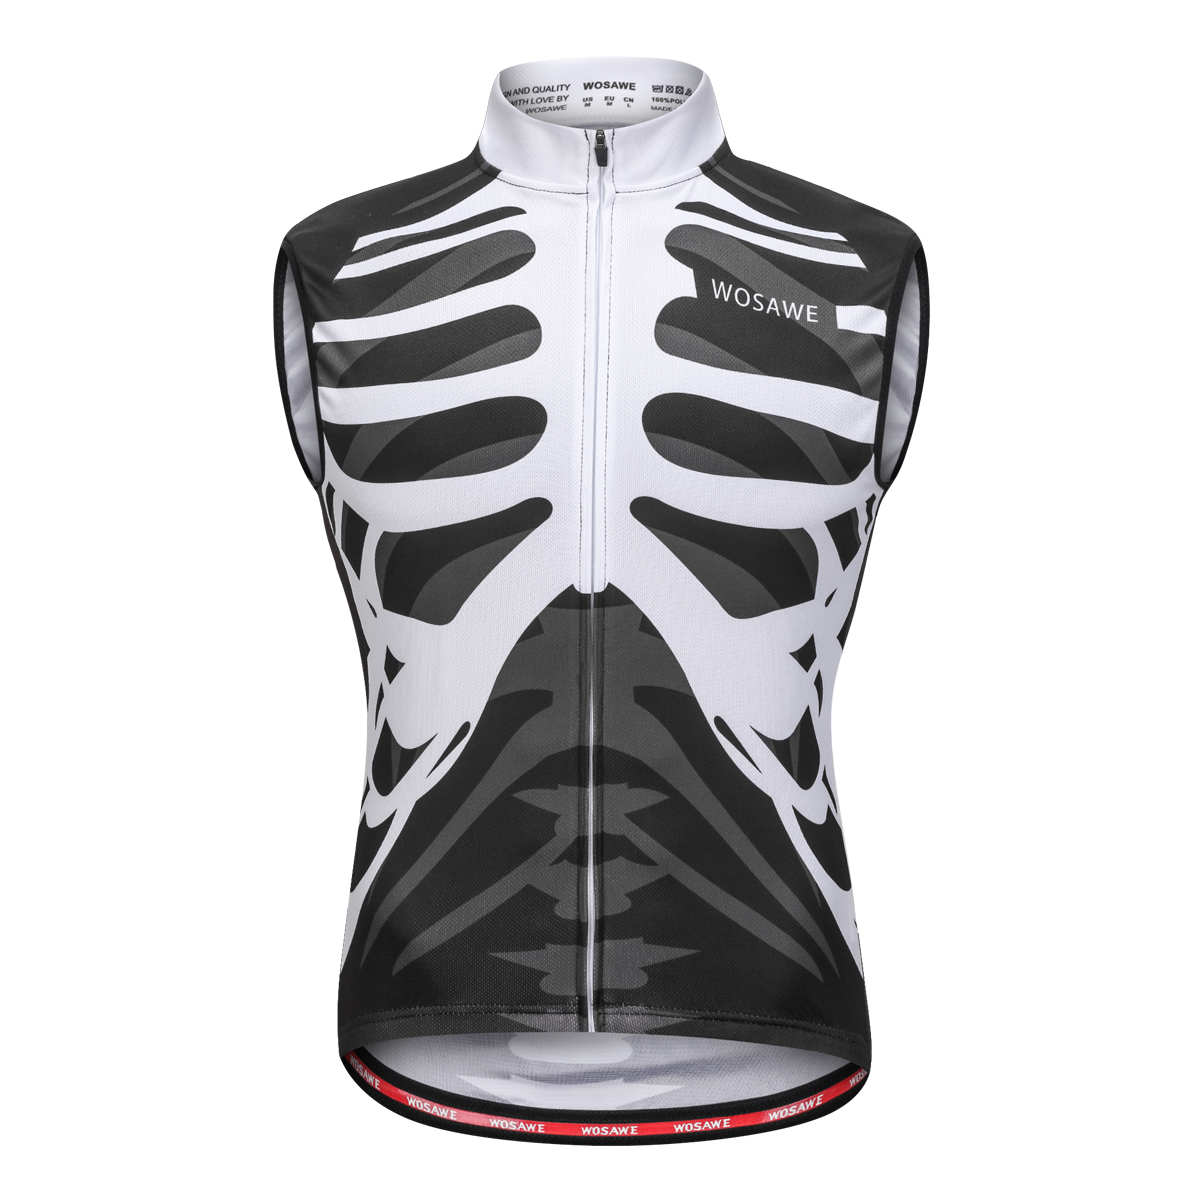 WOSAWE Summer Bicycle Cycling Jersey Men Short Long Sleeveless Shirts Breathable Bike Clothing Sportswear Cycle MTB Jersey in Cycling Jerseys from Sports Entertainment